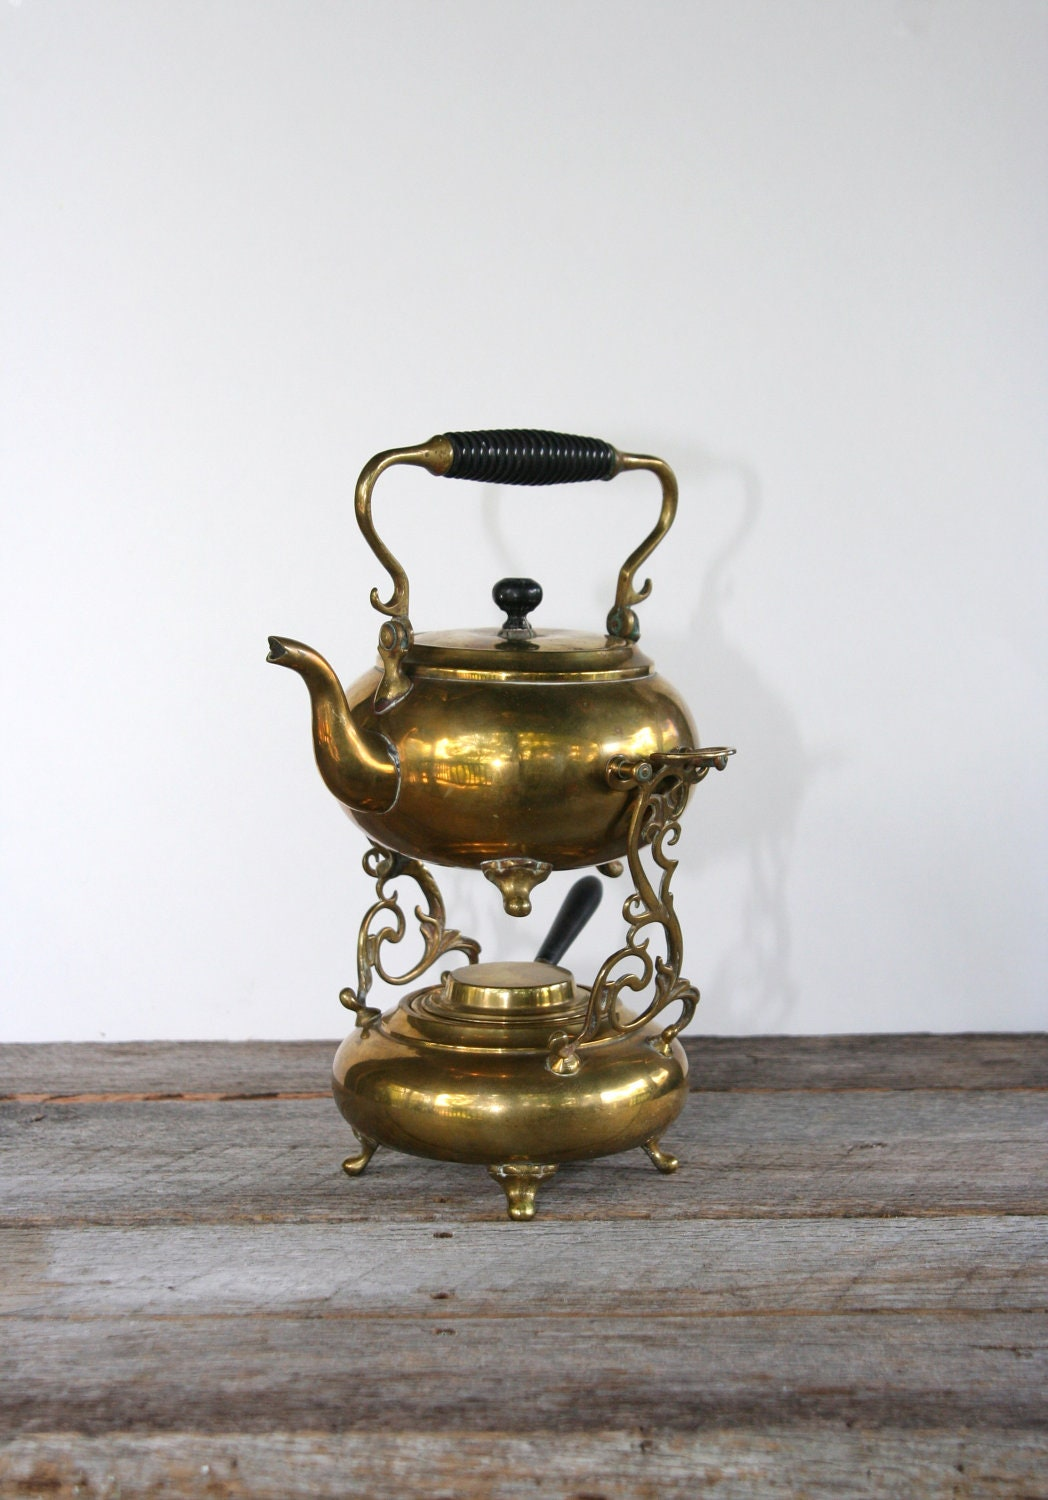 Antique Brass Tea Kettle And Warmer On Decorative Stand. Faux Leather Dining Room Chairs. Single Room Heating And Cooling. Brown Living Room Sets. Decorative Porch Columns. Ways To Divide A Room. Room Wall Dividers. Home Decorating Ideas On A Budget. Teacher Desk Decor